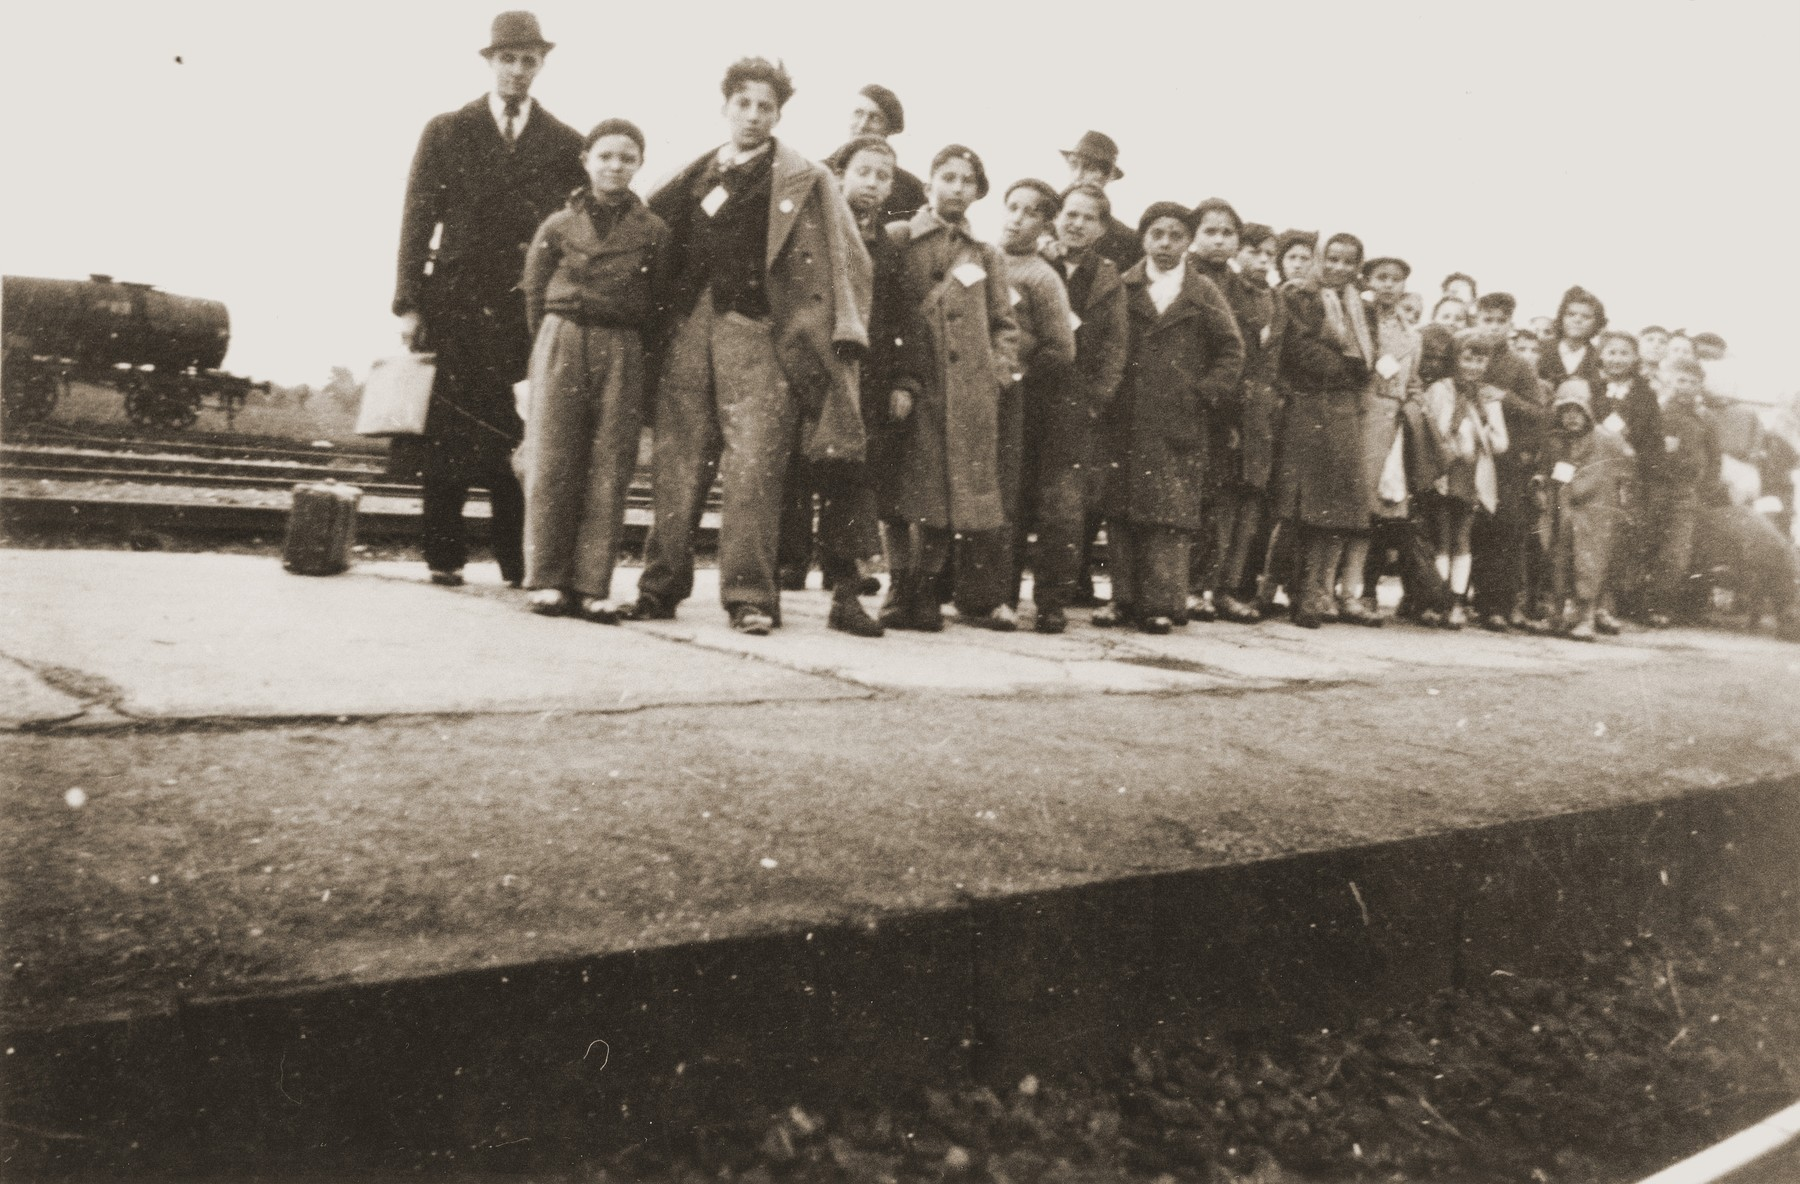 Children released from Rivesaltes wait on the platform of a train station for transport to the Chateau de Montluel children's home near Lyon.